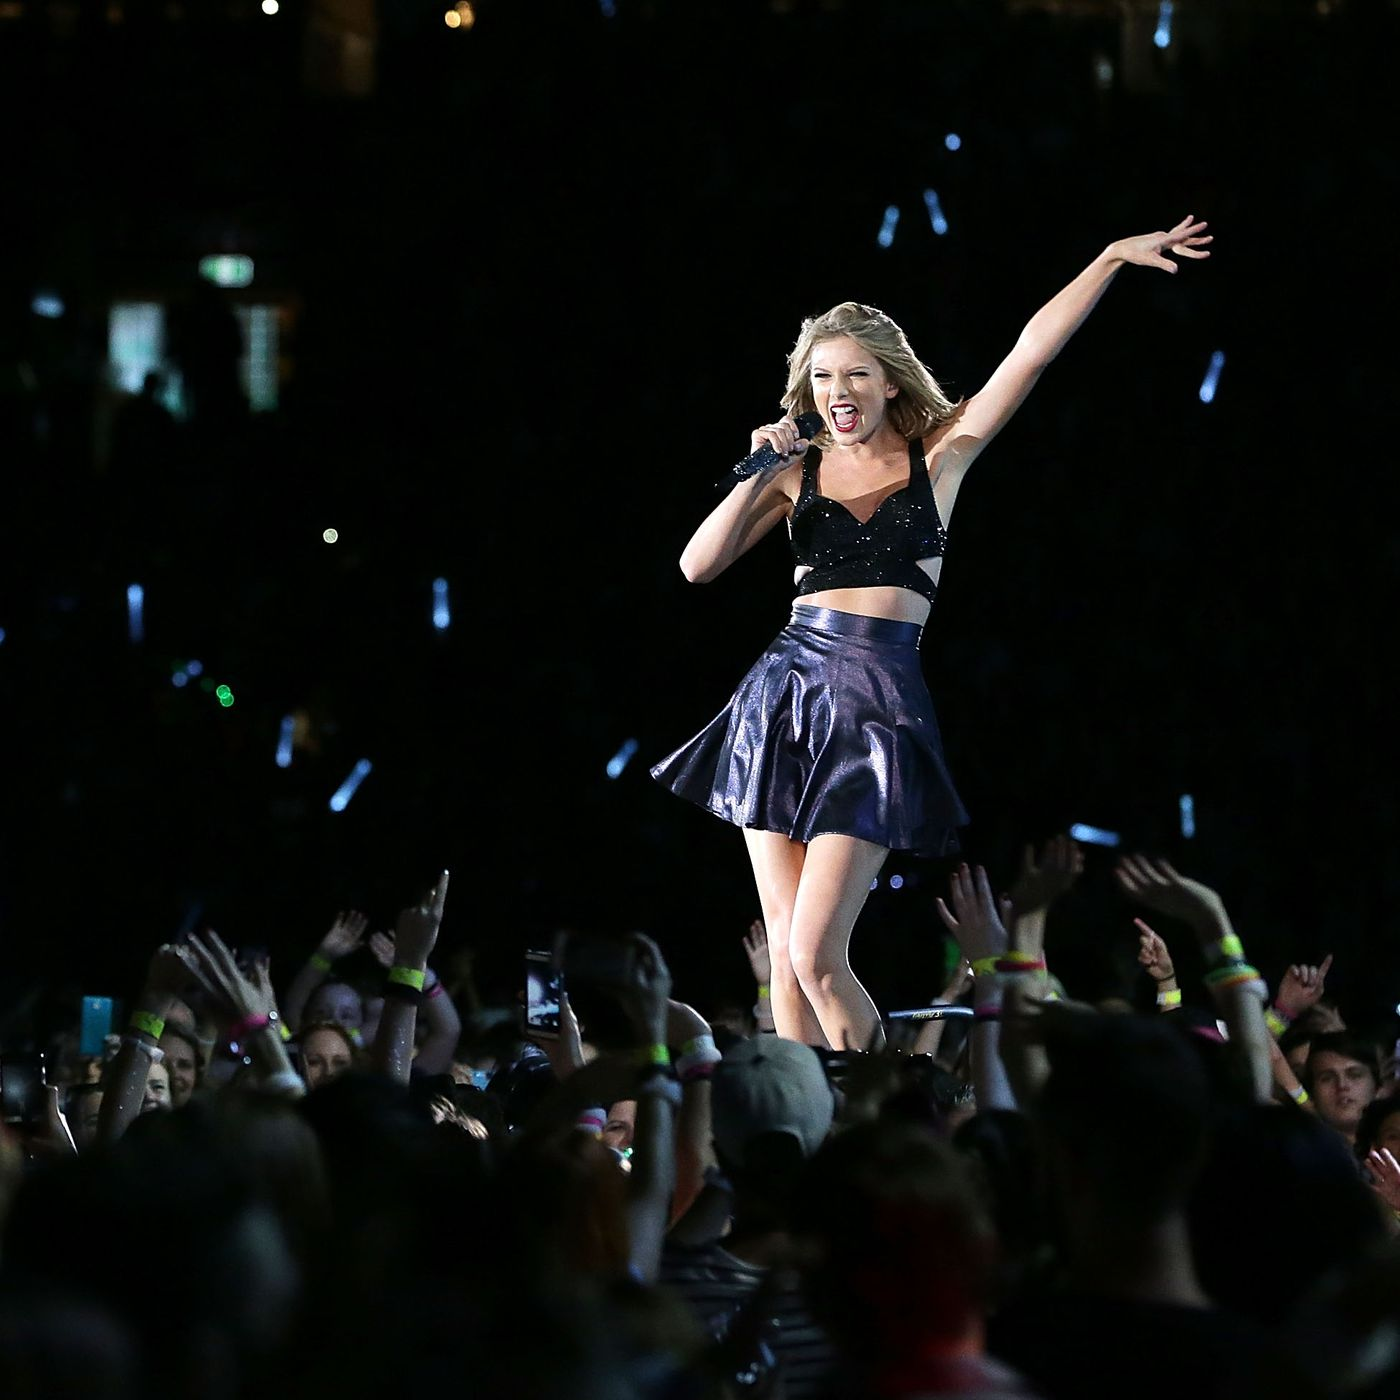 Taylor Swift S New Romantics Video Is Here But There S A Catch Racked